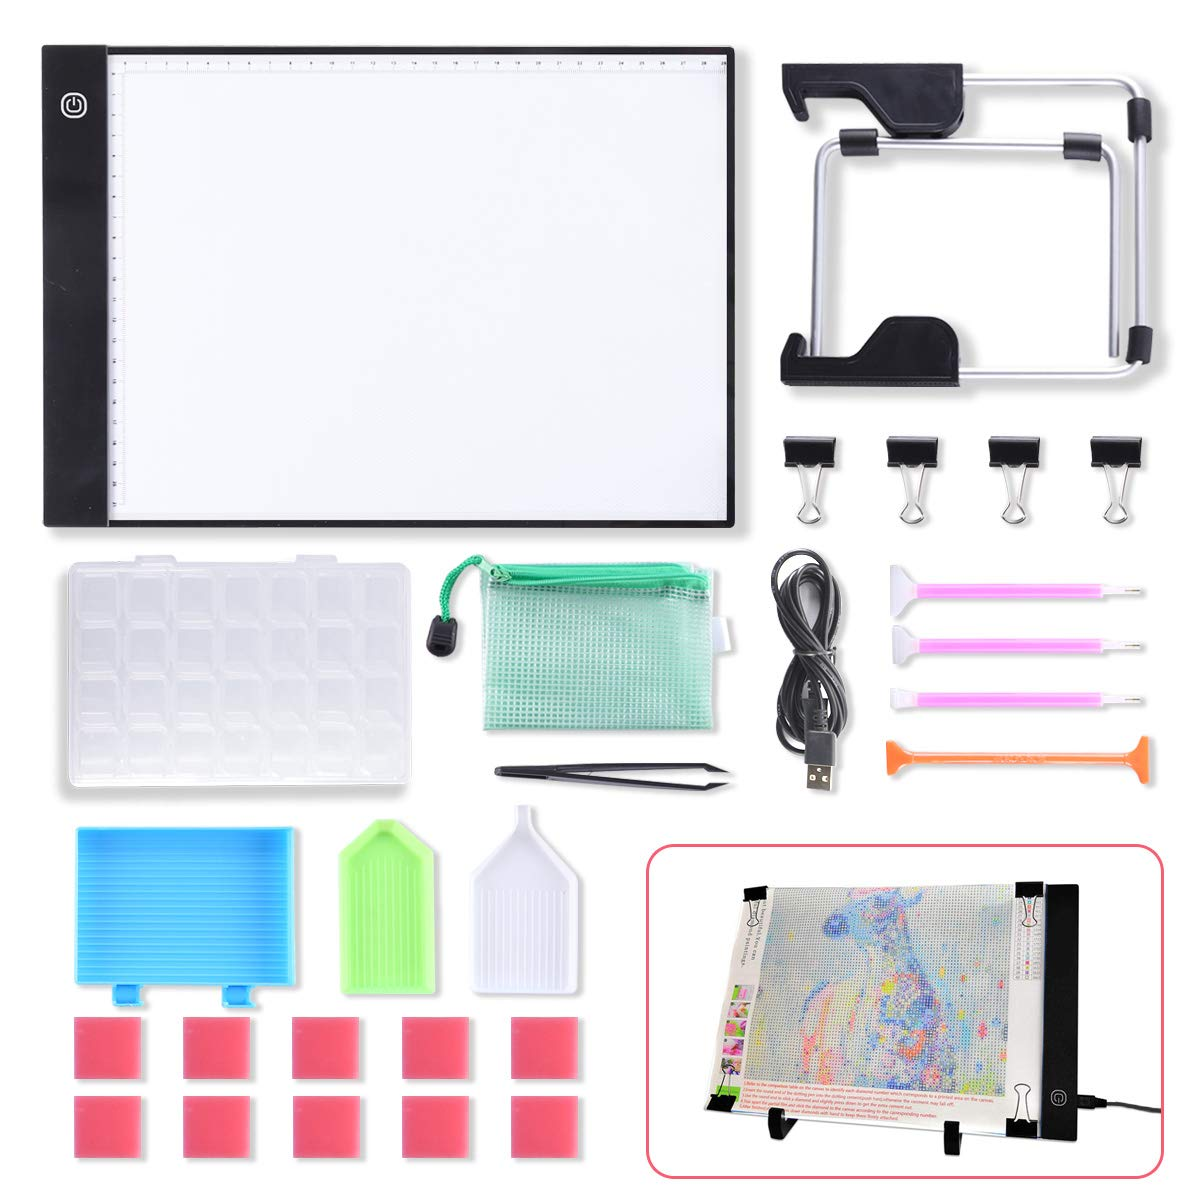 A4 LED Light Pad Light Board Tracing Light Box LED Light Tablet, Dimmable Light Board Kit w/Diamond Painting Tools, Stand Holder and Clips, Apply to DIY 5D Diamond Painting Sketching Drawing